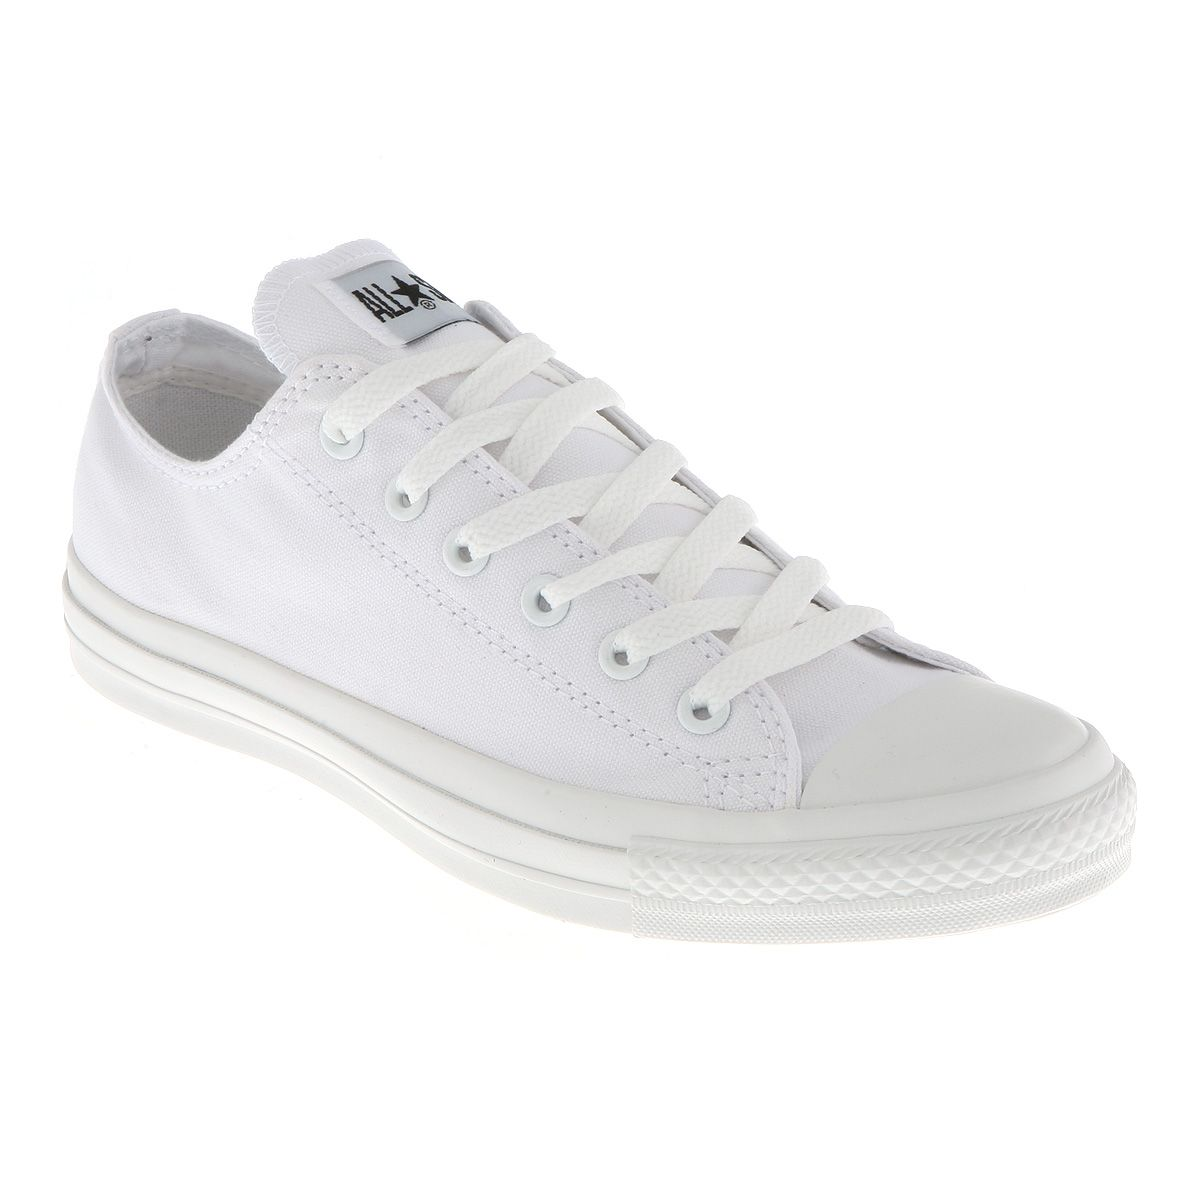 689a2b050216 Converse ALL STAR OX LOW WHITE MONO CANVAS EXCLUSIVE Shoes - Converse  Trainers - Office Shoes